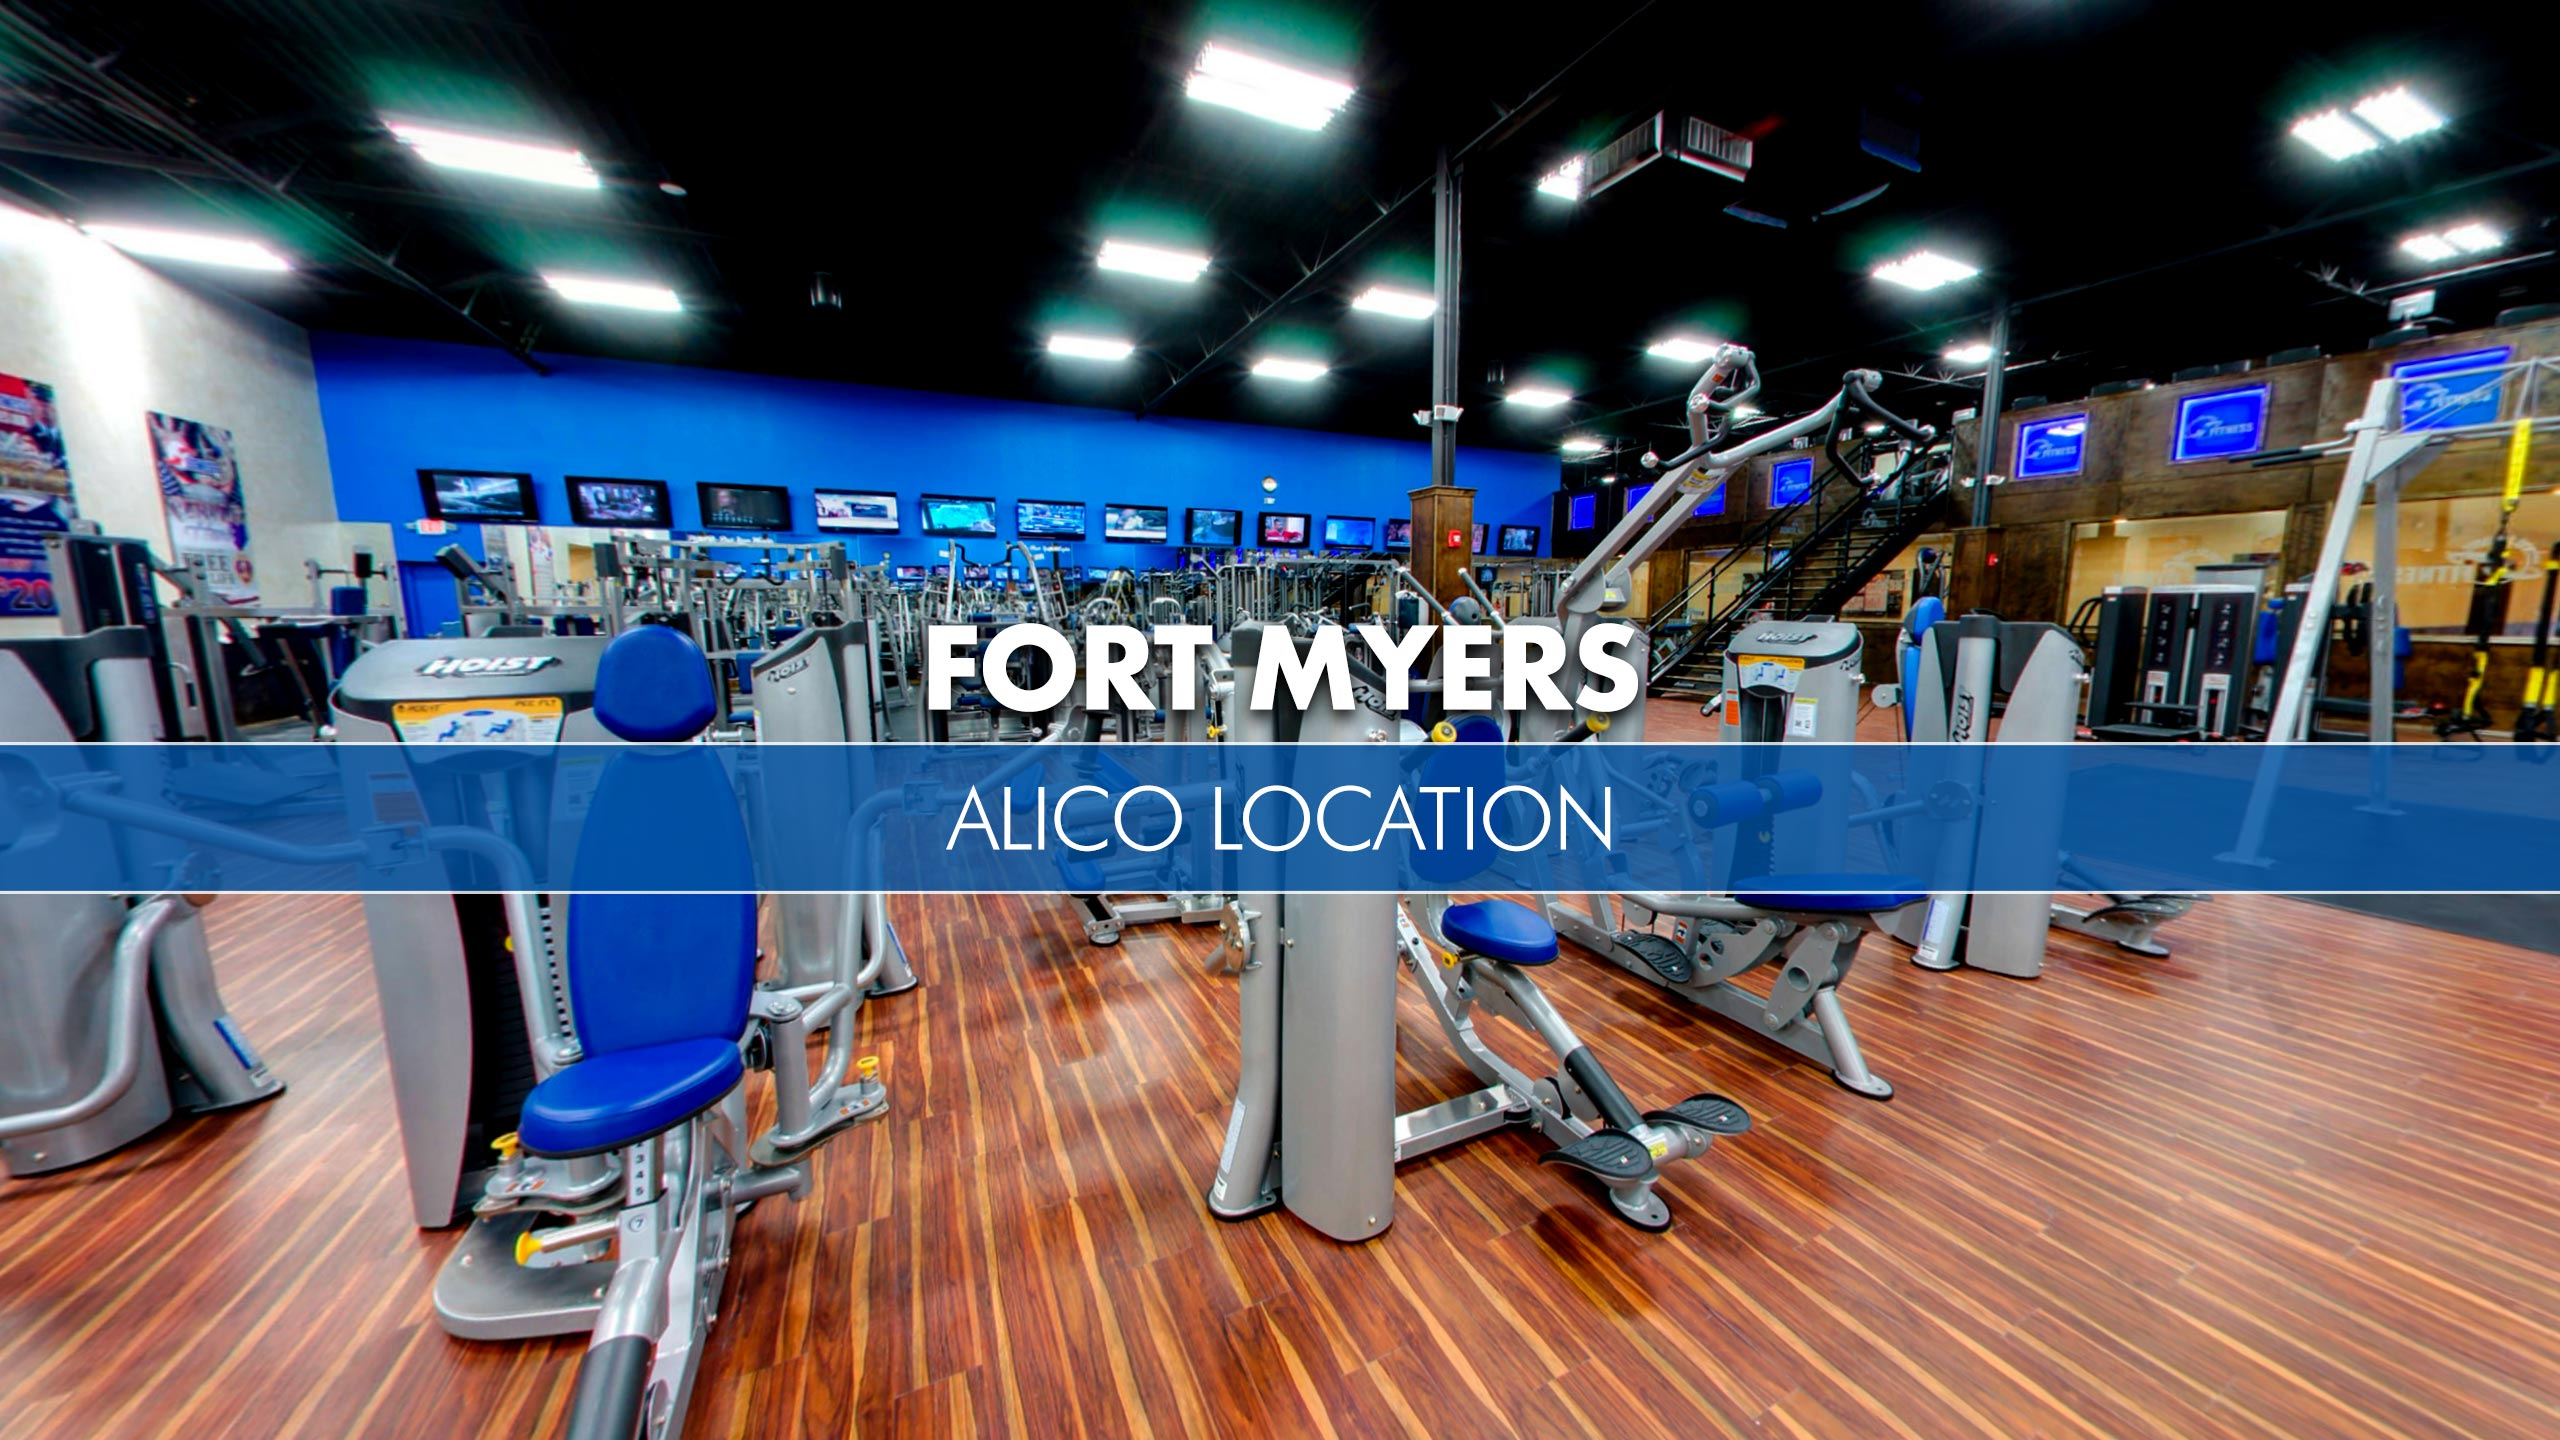 Fort Myers - Alico Location